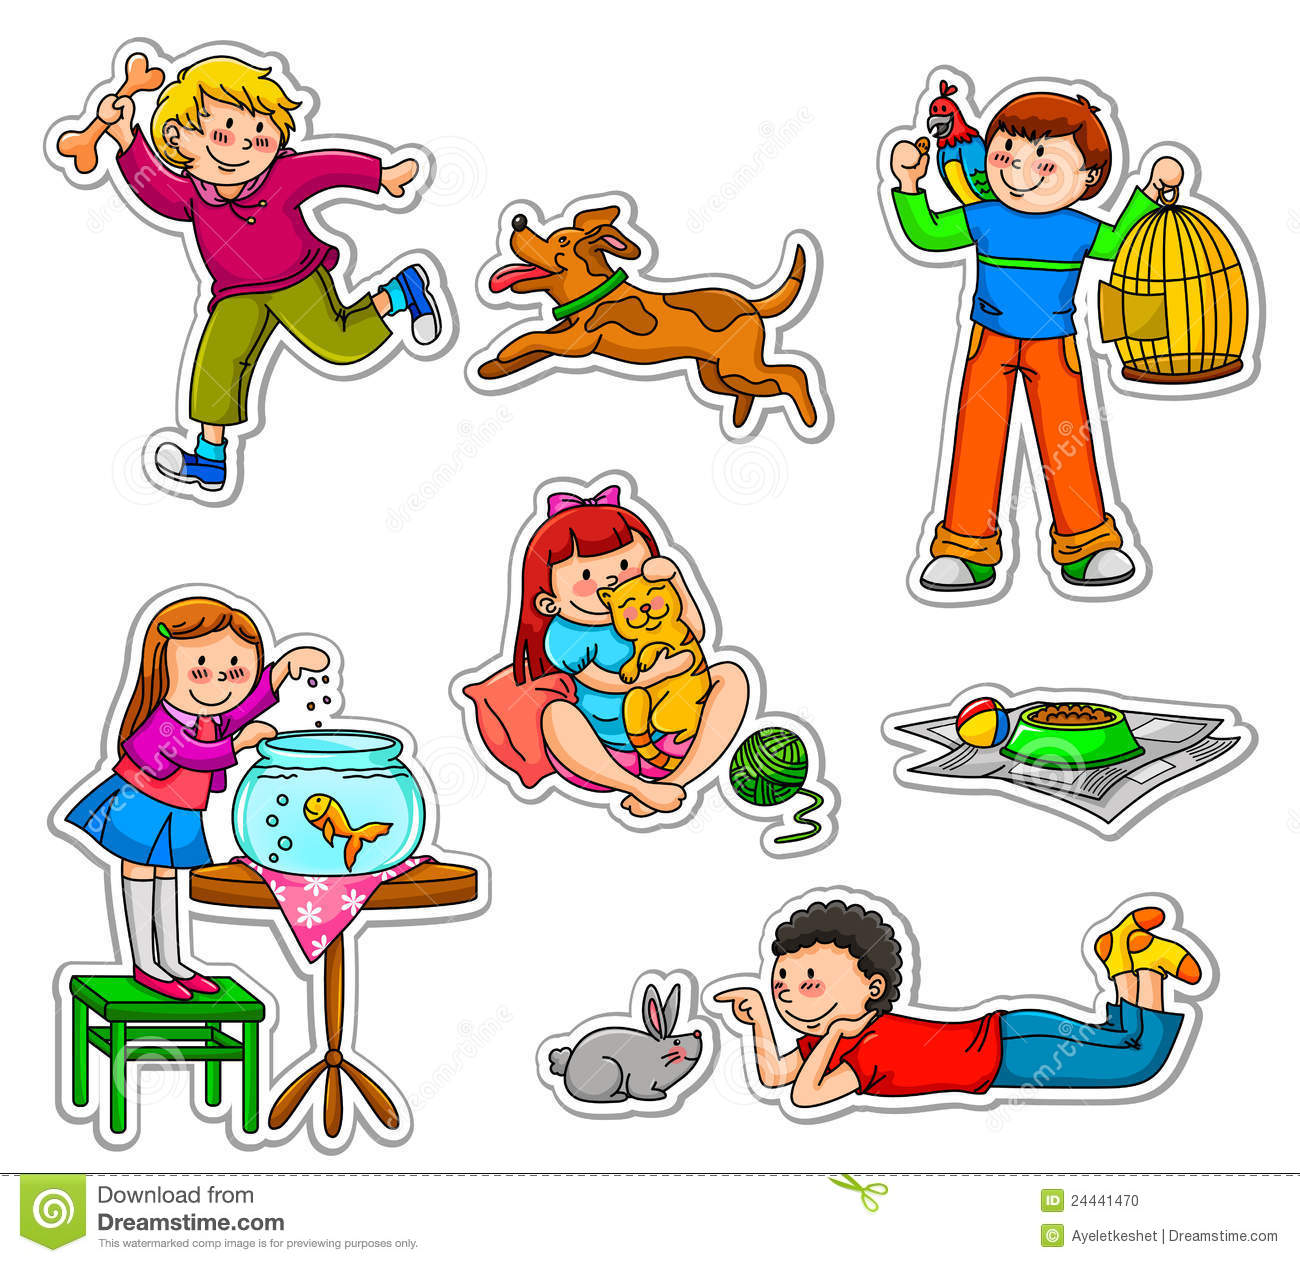 Kids And Pets Stock Photo - Image: 24441470